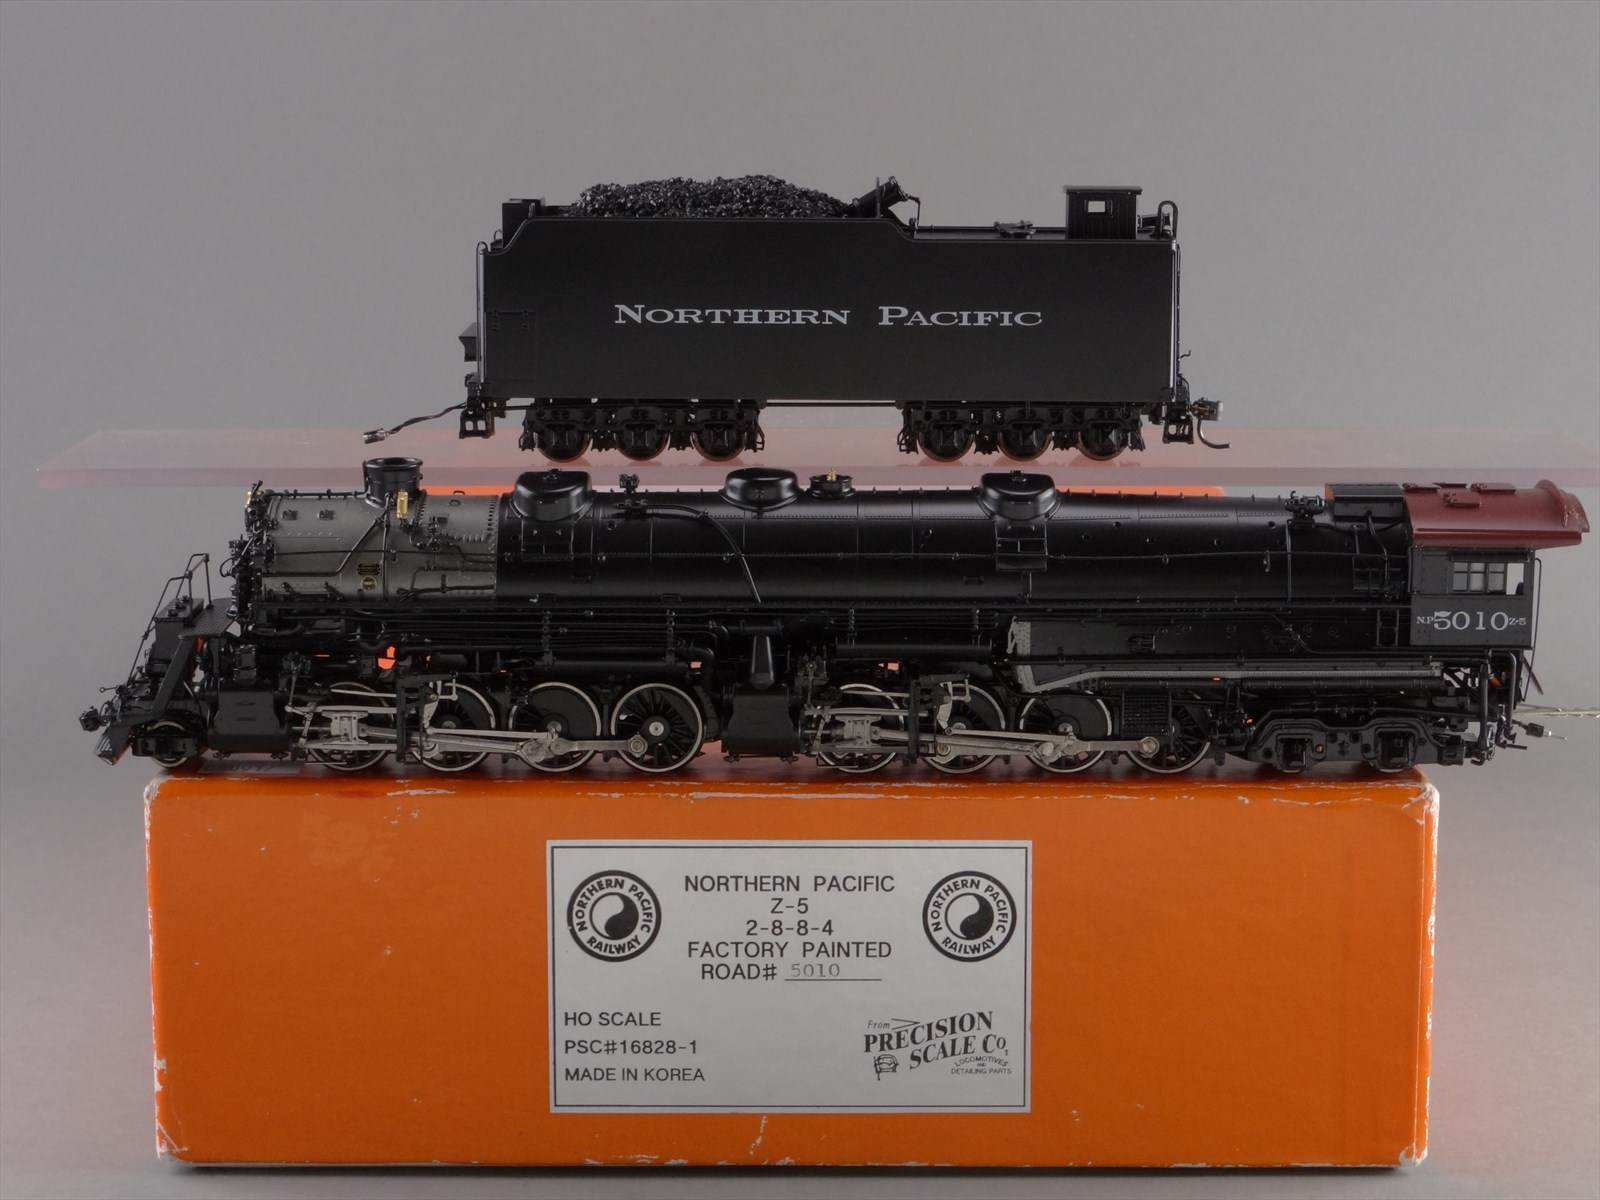 PSC 16828-1 - NP Z-5 - Northern Pacific, 2-8-8-4, Yellowstone No.5010 - Black Boiler.10 BOX